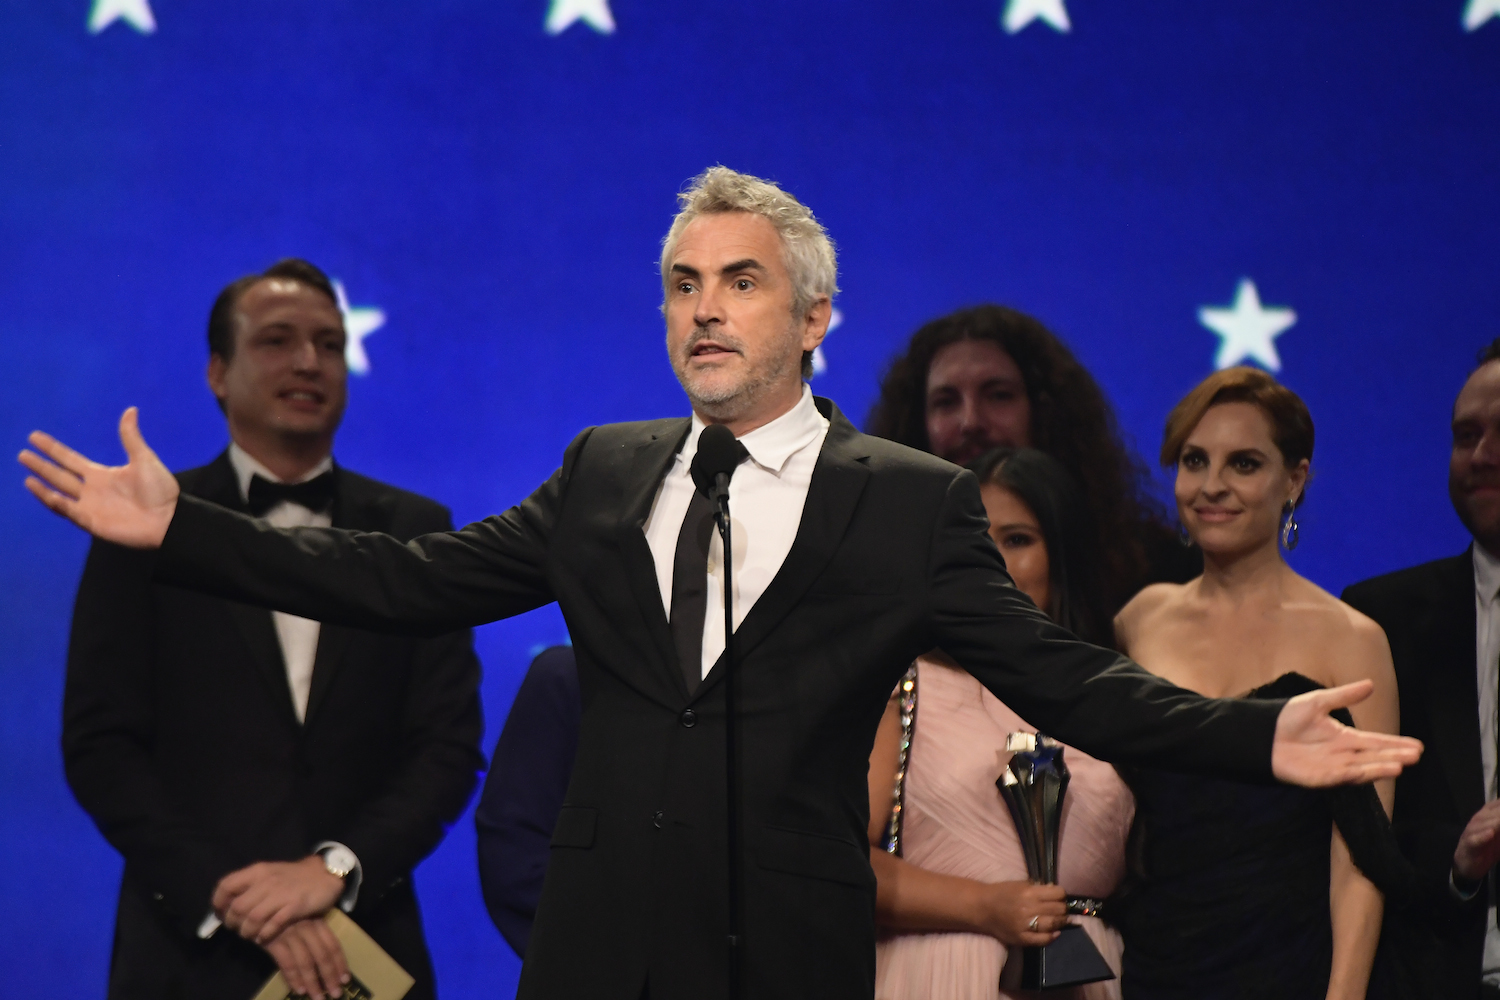 Are 'Roma's Oscar Nominations a Win for Diversity or a Different Shade of Whiteness in Hollywood?